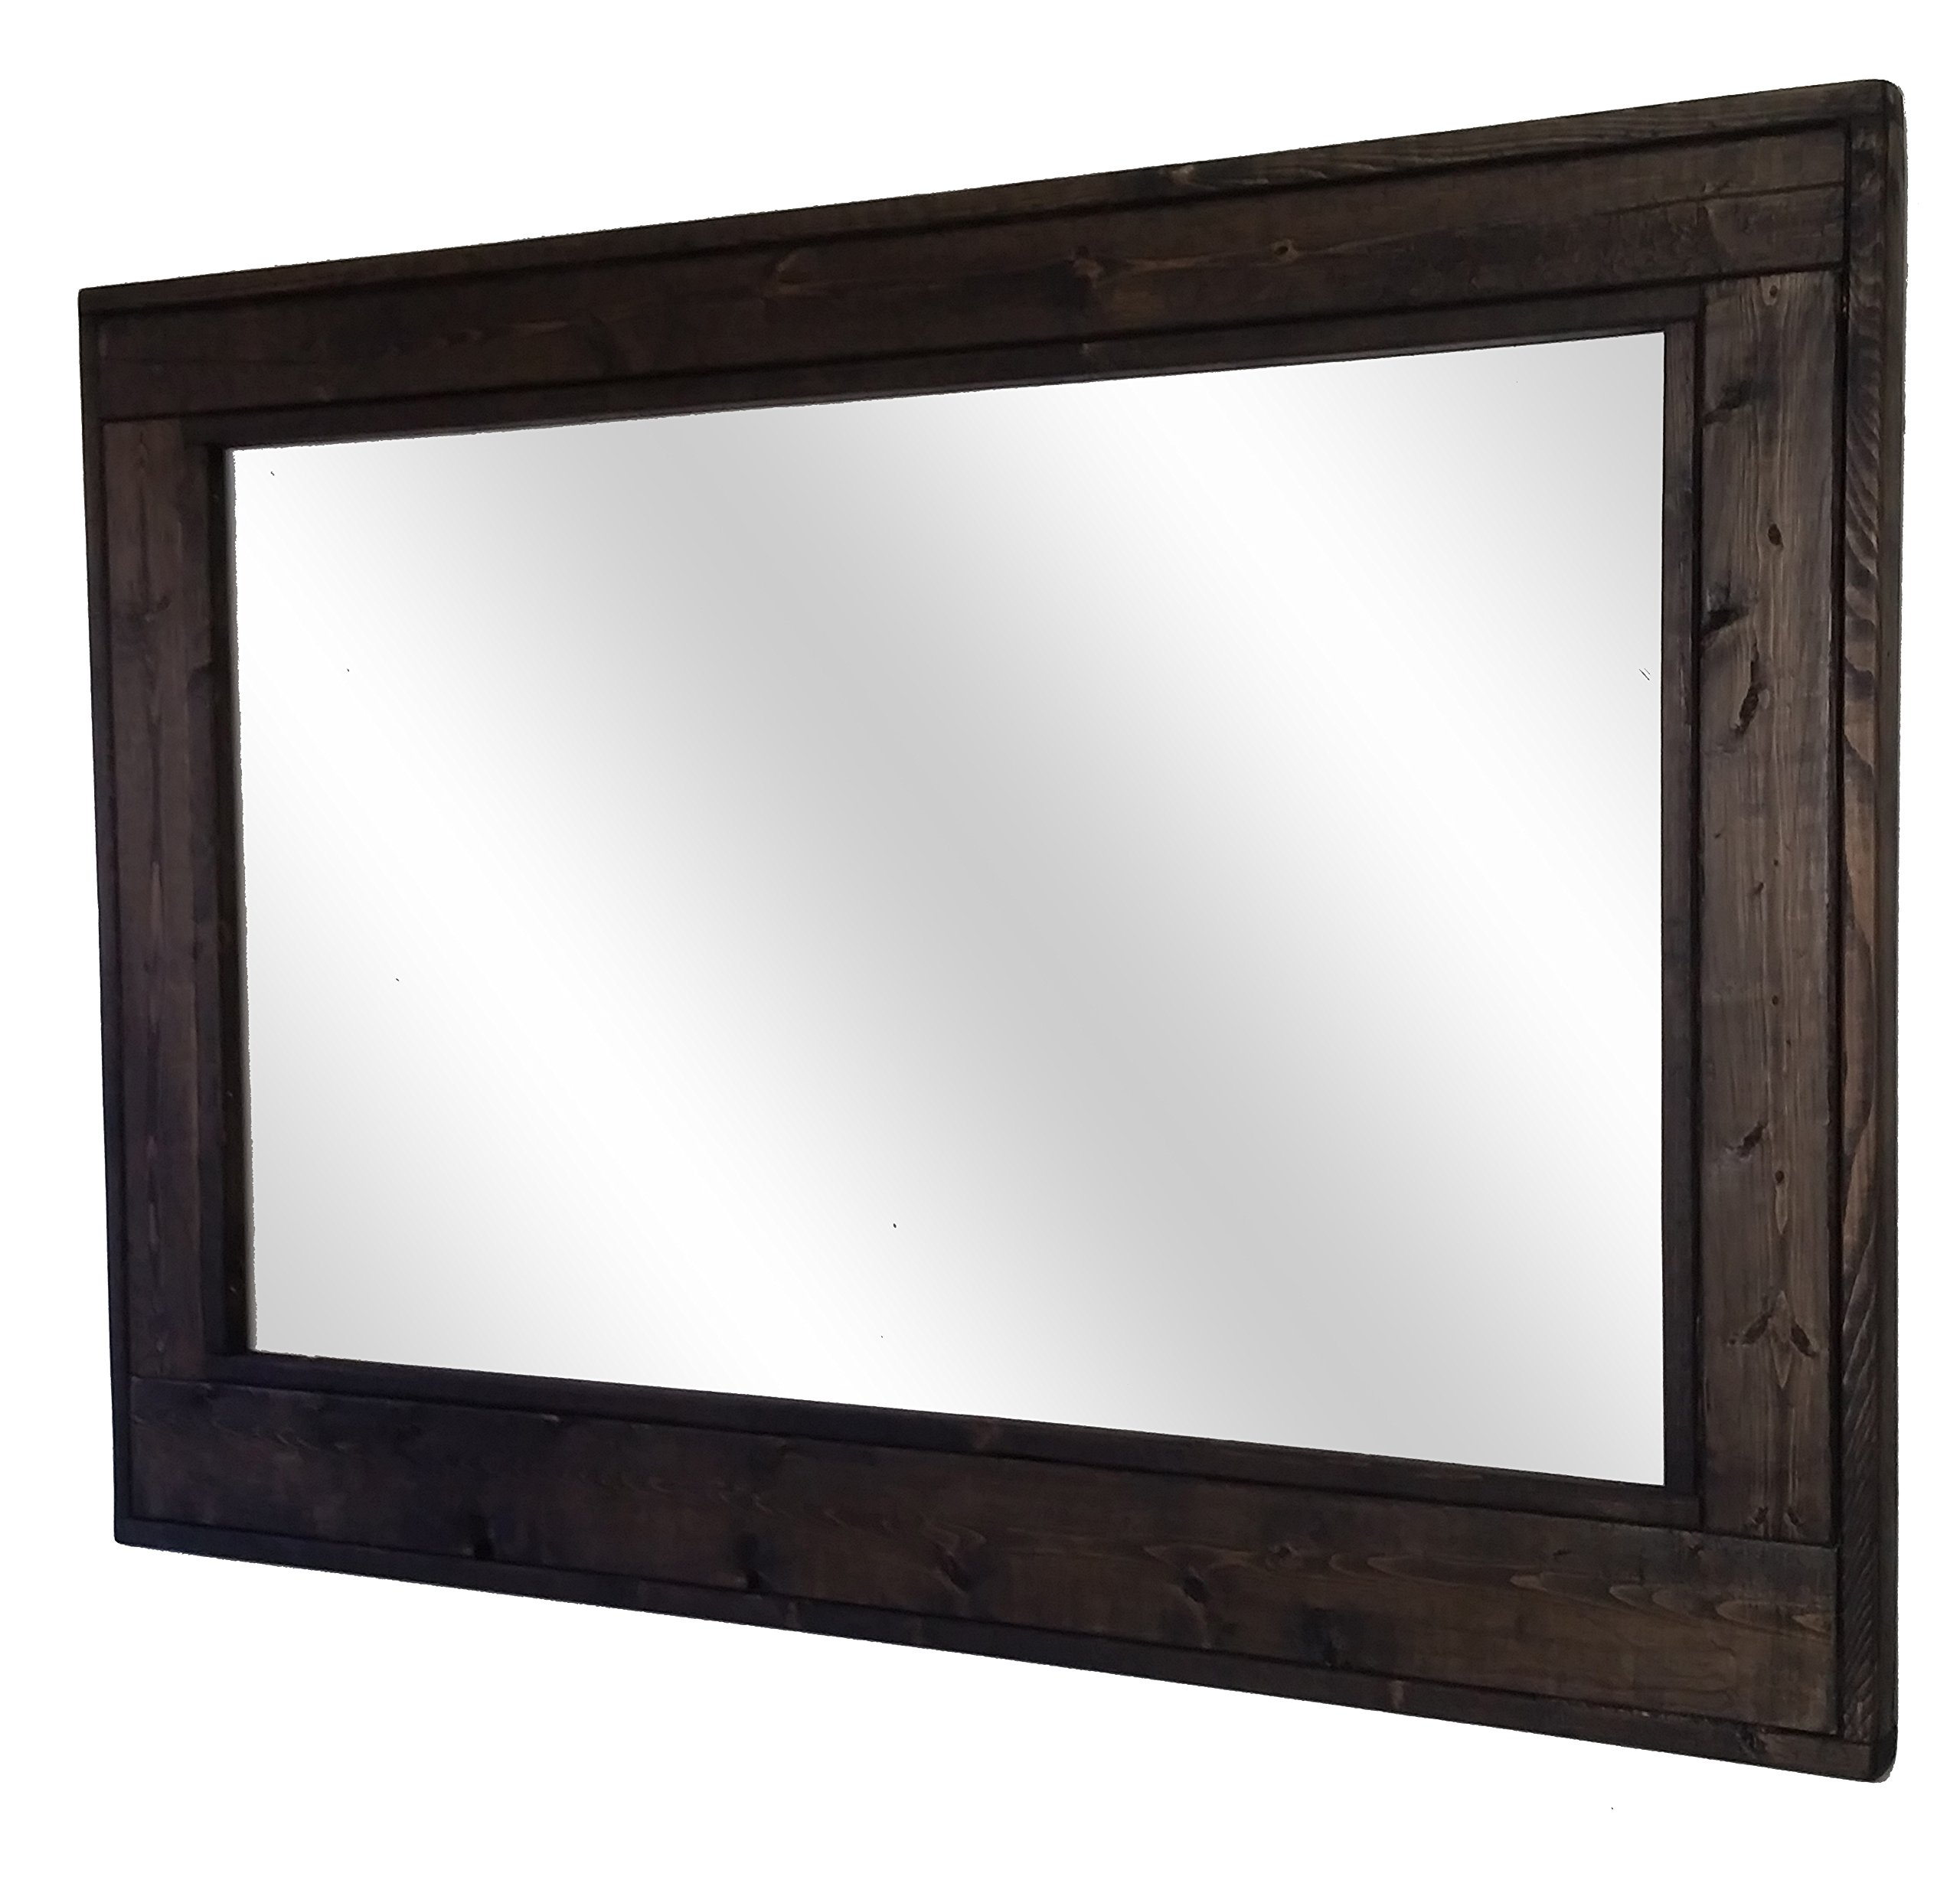 Herringbone 42 x 30 Horizontal Framed Mirror Stained in Ebony - Reclaimed Wood Mirror - Large Wall Mirror - Rustic Modern Home - Home Decor - Mirror - Housewares by Renewed Decor